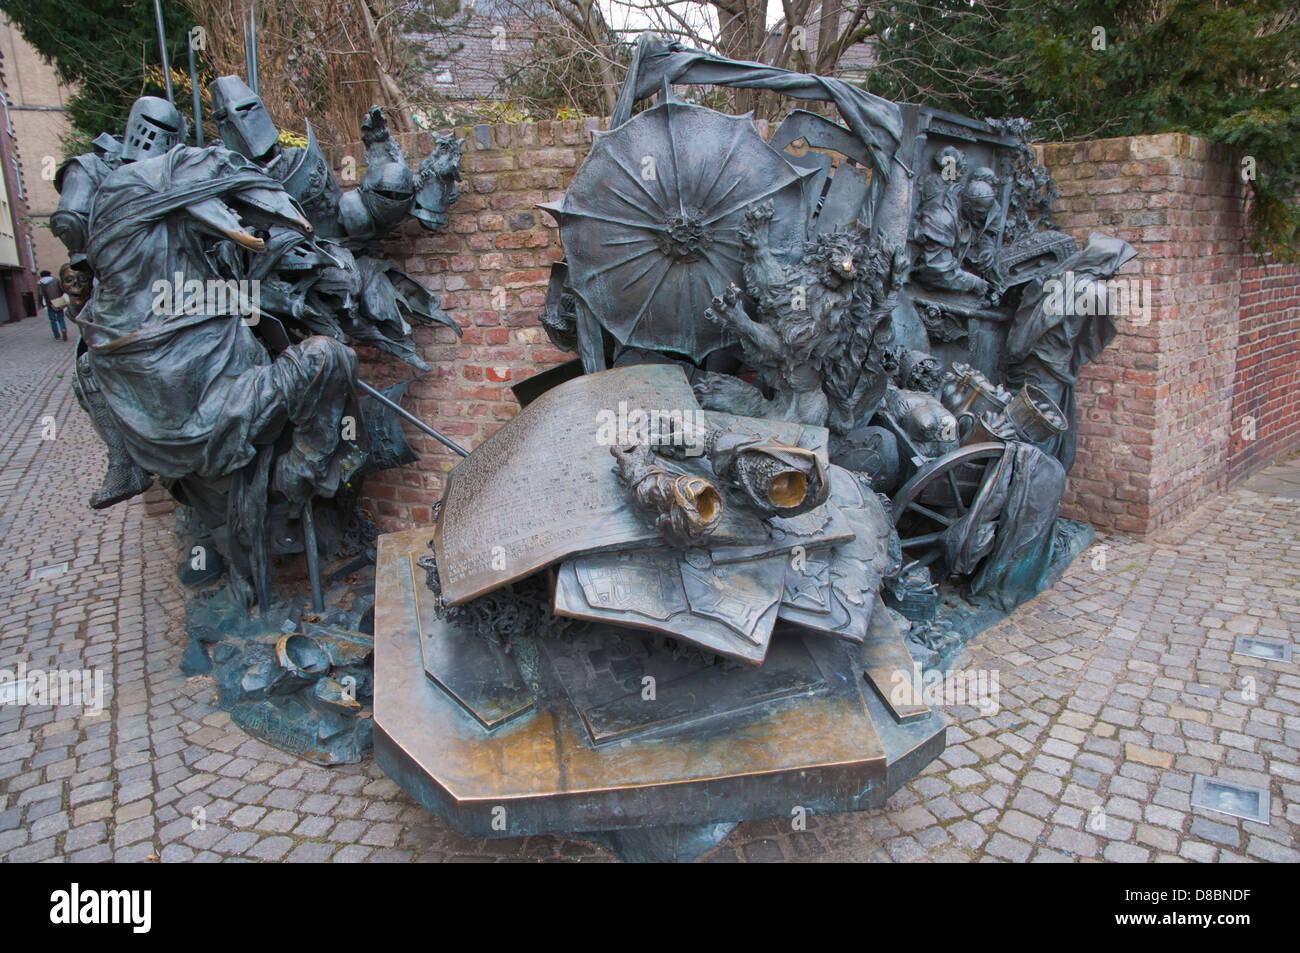 City Monument by Bert Gerresheim at Burgplatz square Altstadt old town Dusseldorf city North Rhine Westphalia region - Stock Image